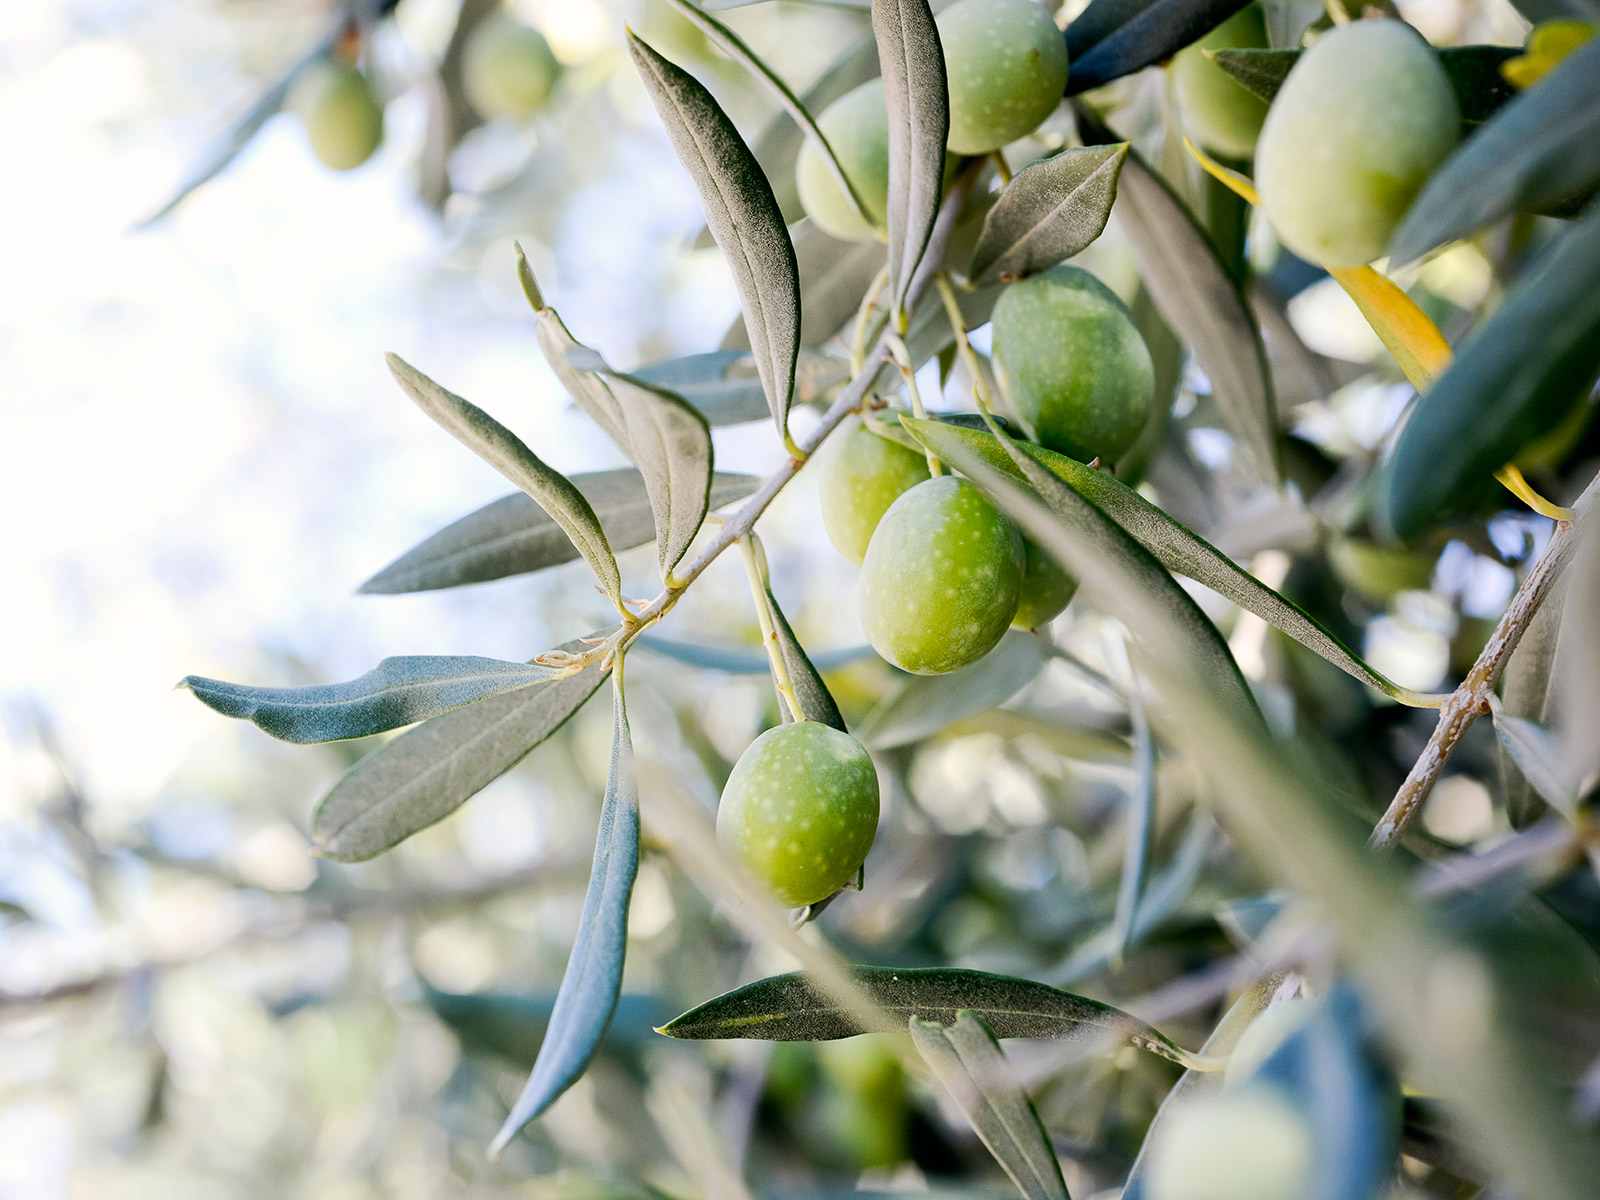 olive ripening on a branch